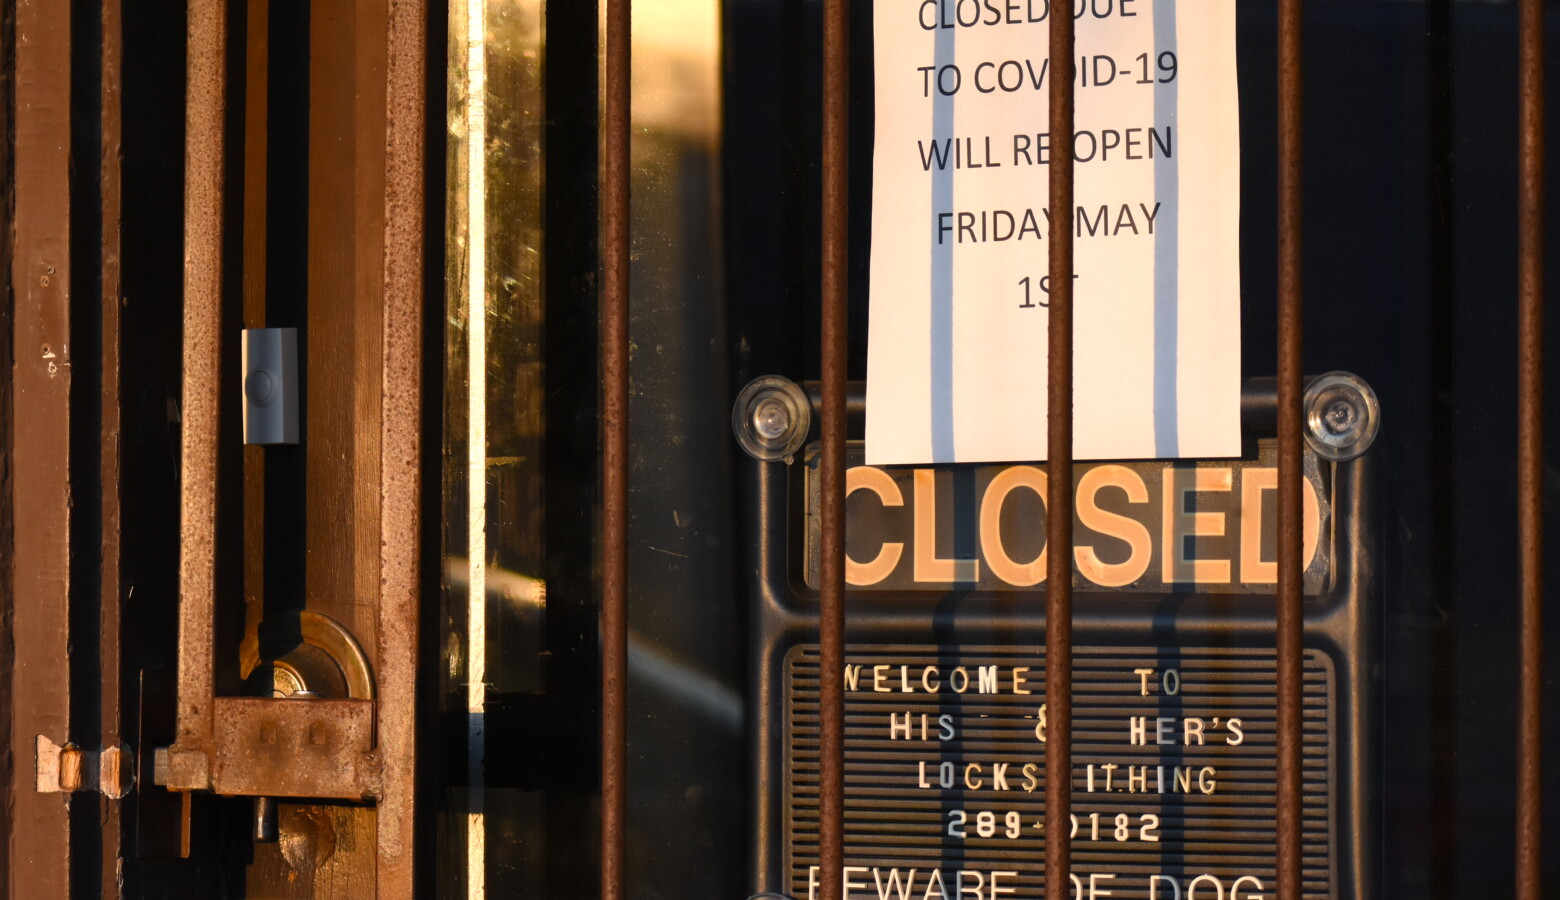 A business in South Bend temporarily closed due to COVID-19. (Justin Hicks/IPB News)